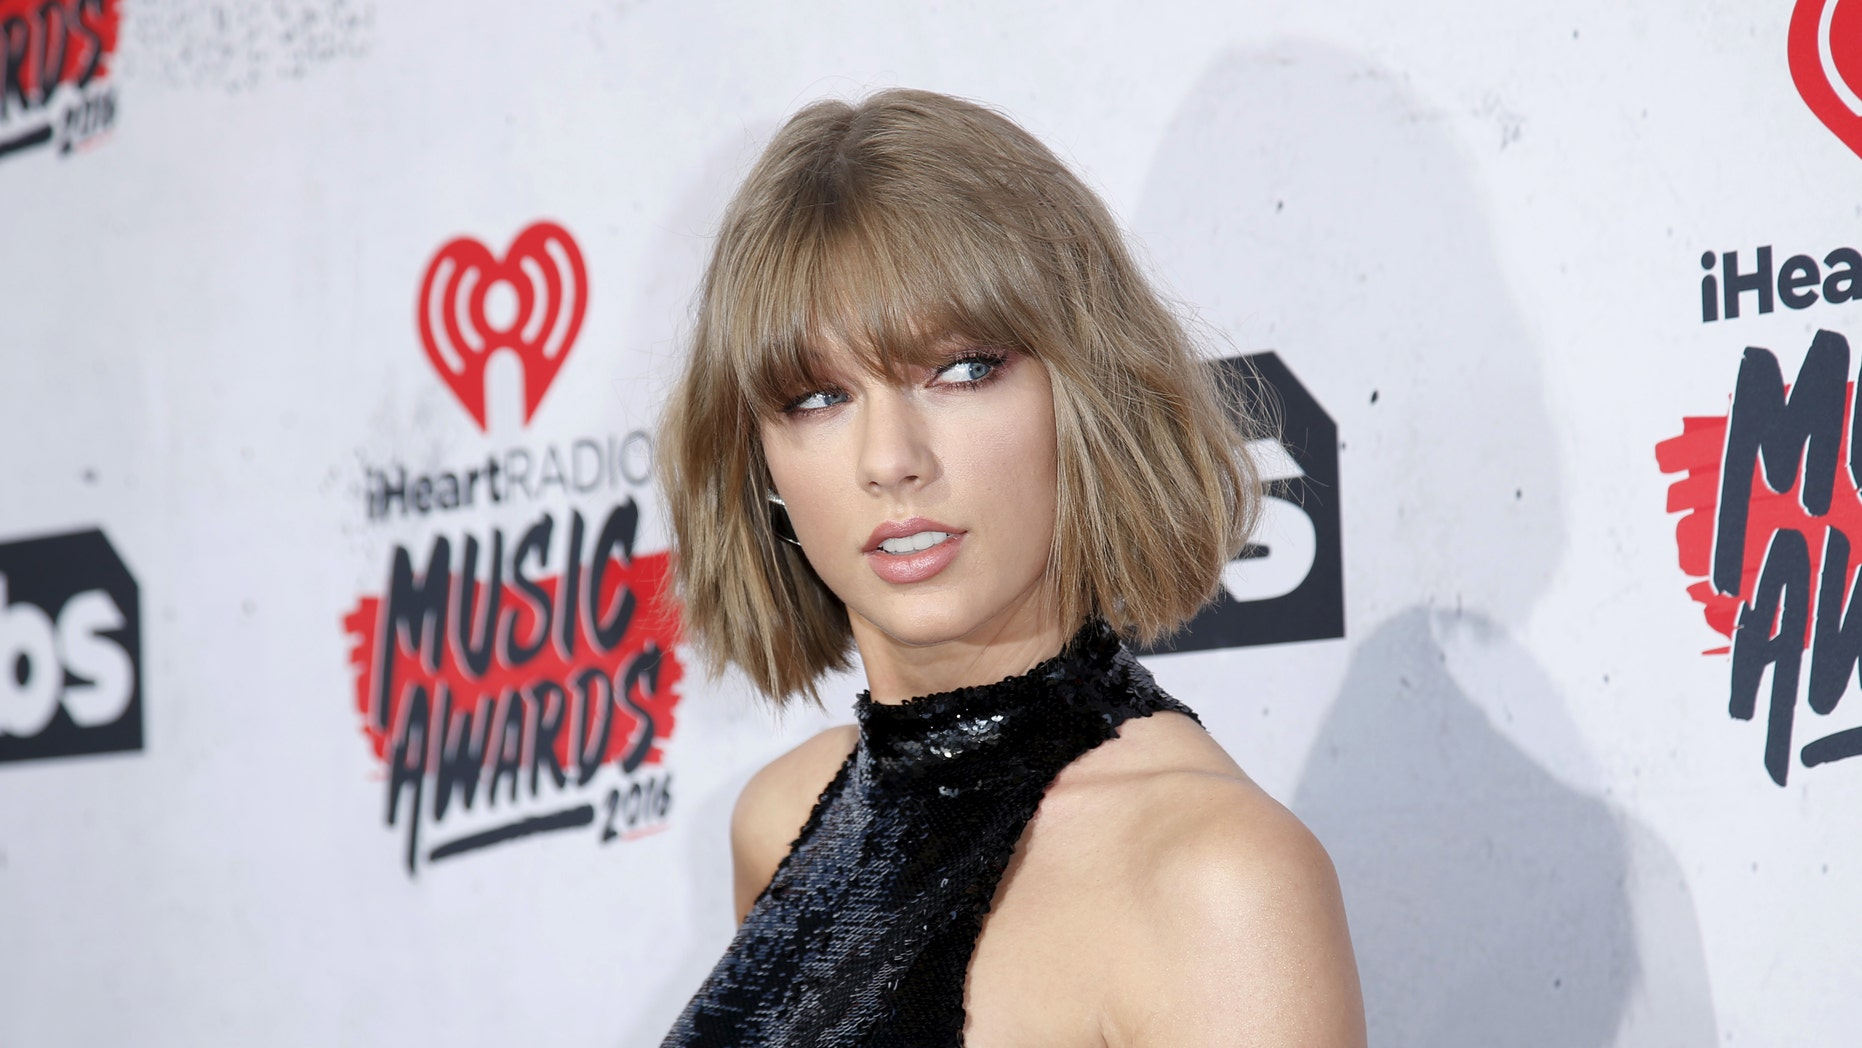 Taylor Swift poses at the 2016 iHeartRadio Music Awards in Inglewood, California, April 3, 2016.